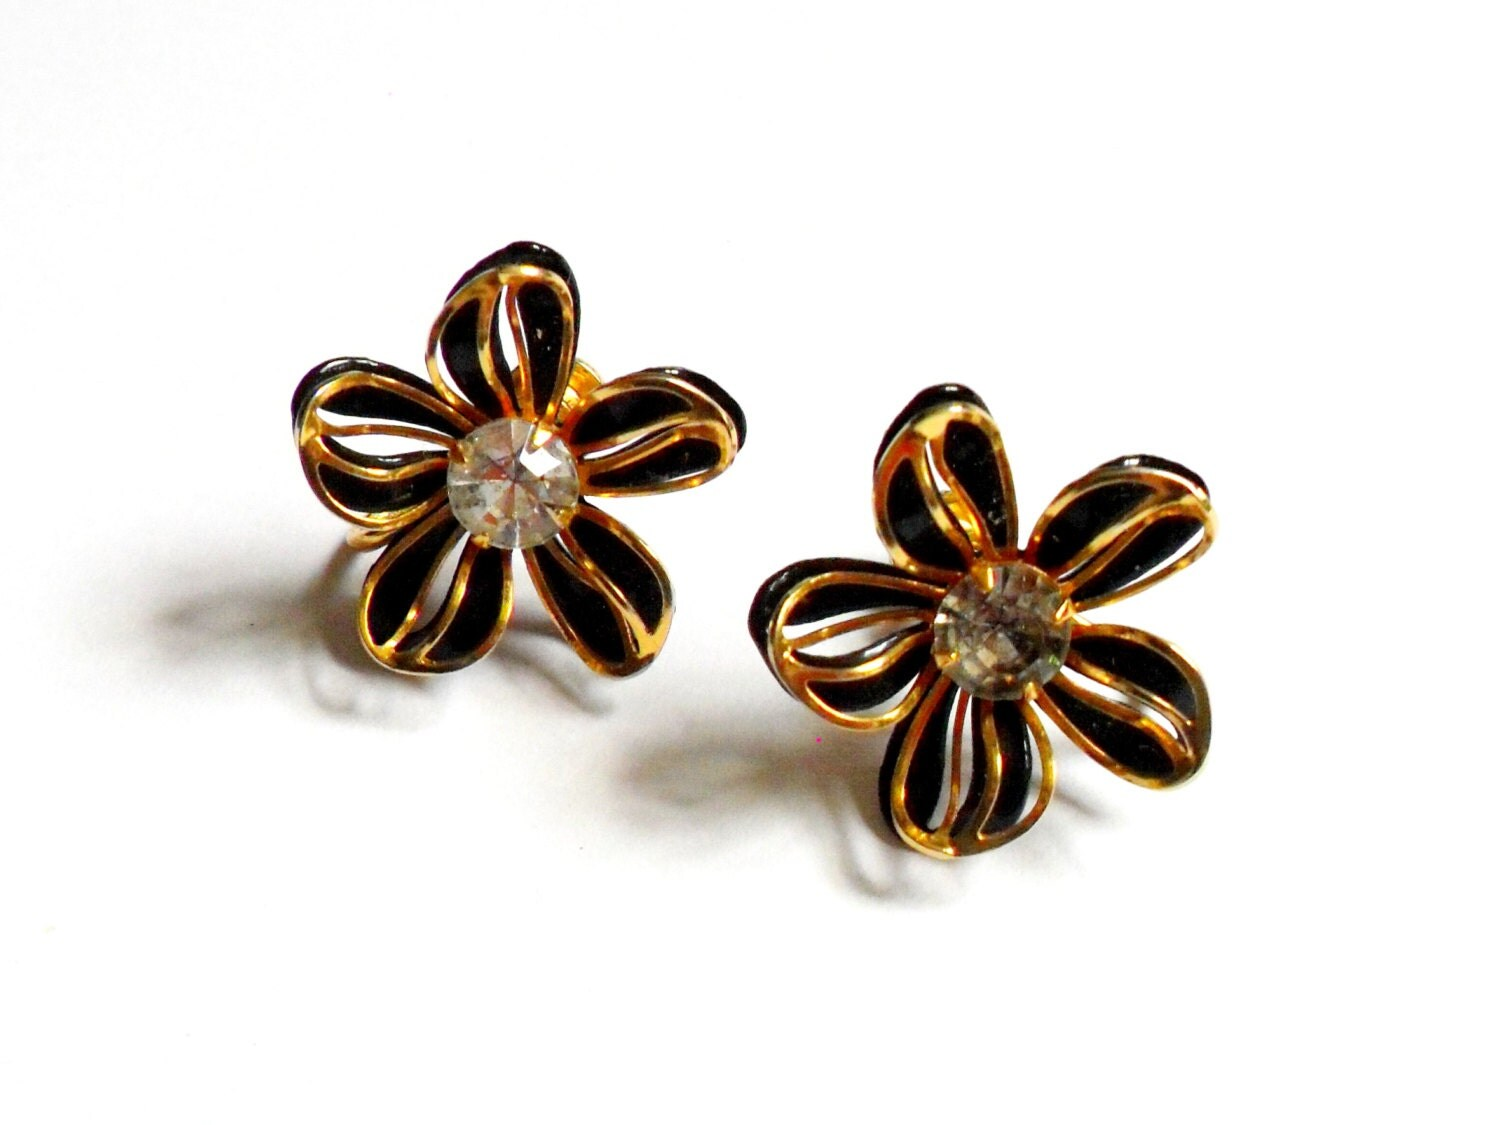 Flower screw back earrings vintage bugbee niles by for Bugbee and niles jewelry